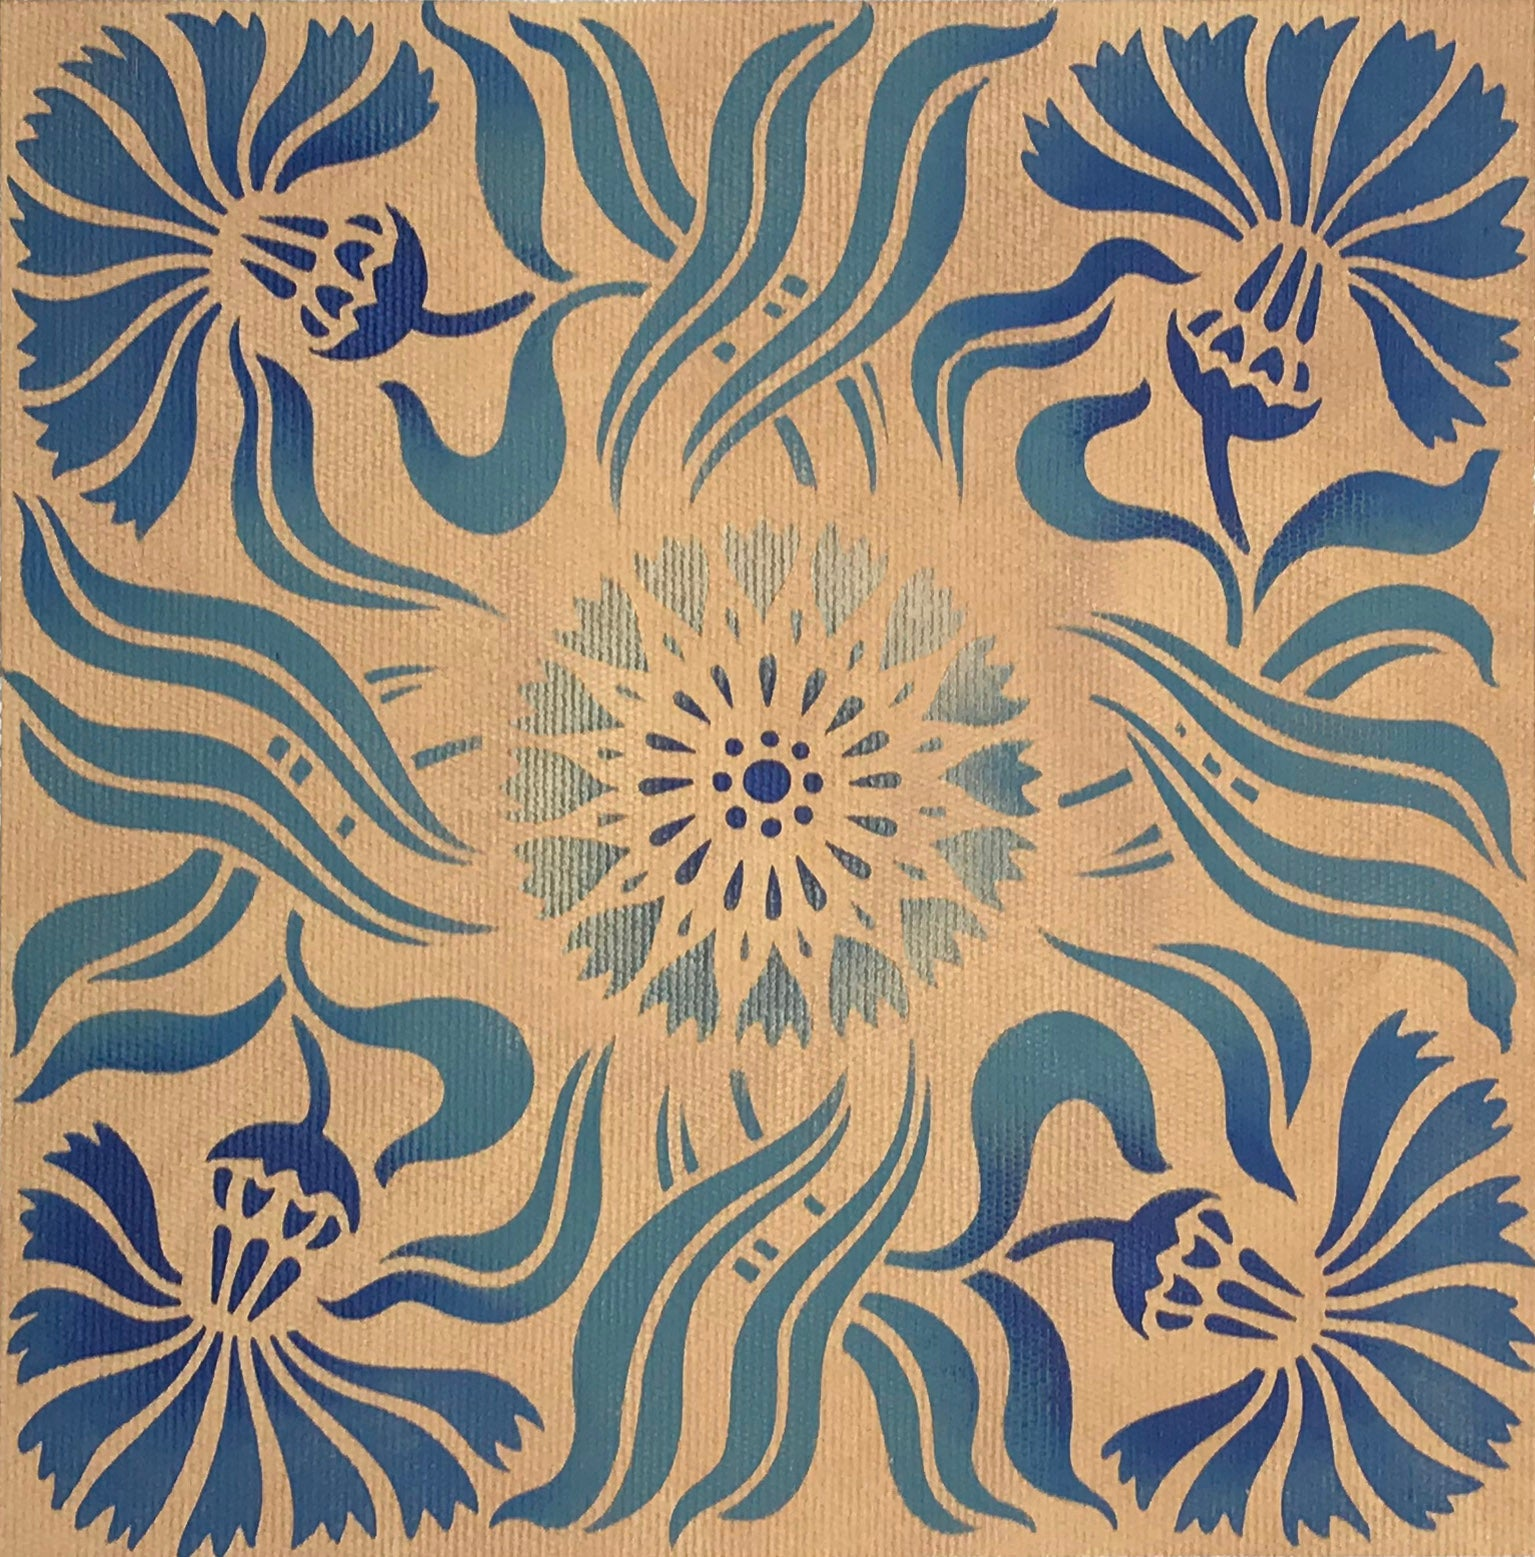 The Collection image for this Thistle Tile pattern.